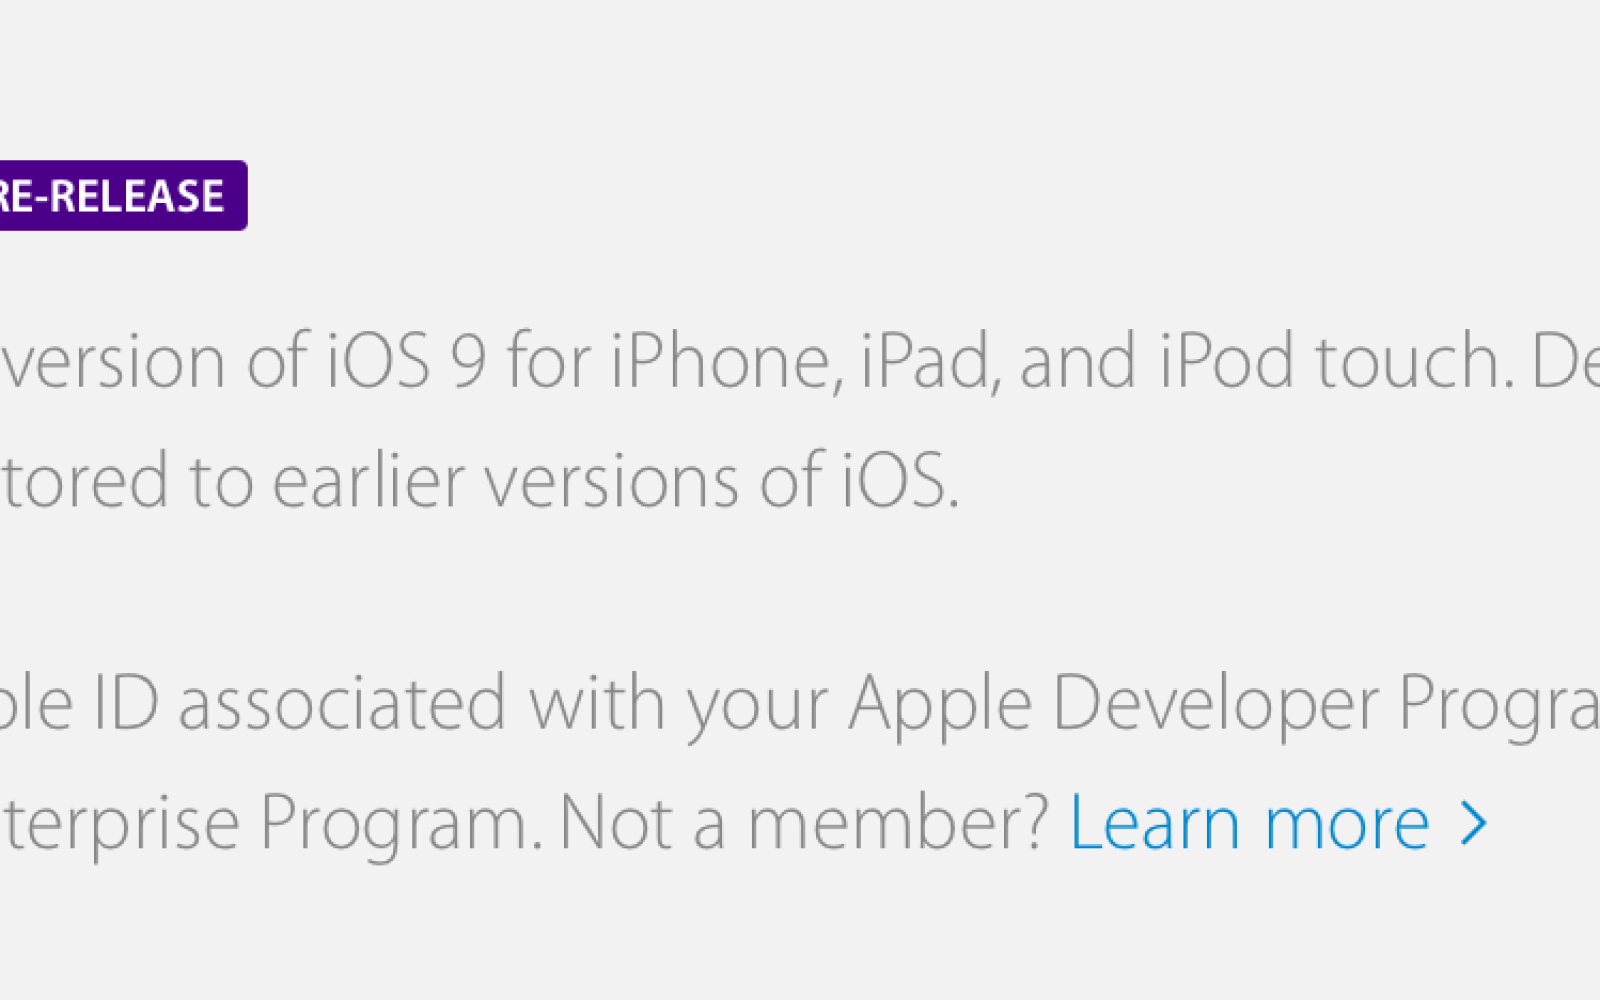 Apple releases iOS 9 beta 2 to developers for iPhone, iPad & iPod touch